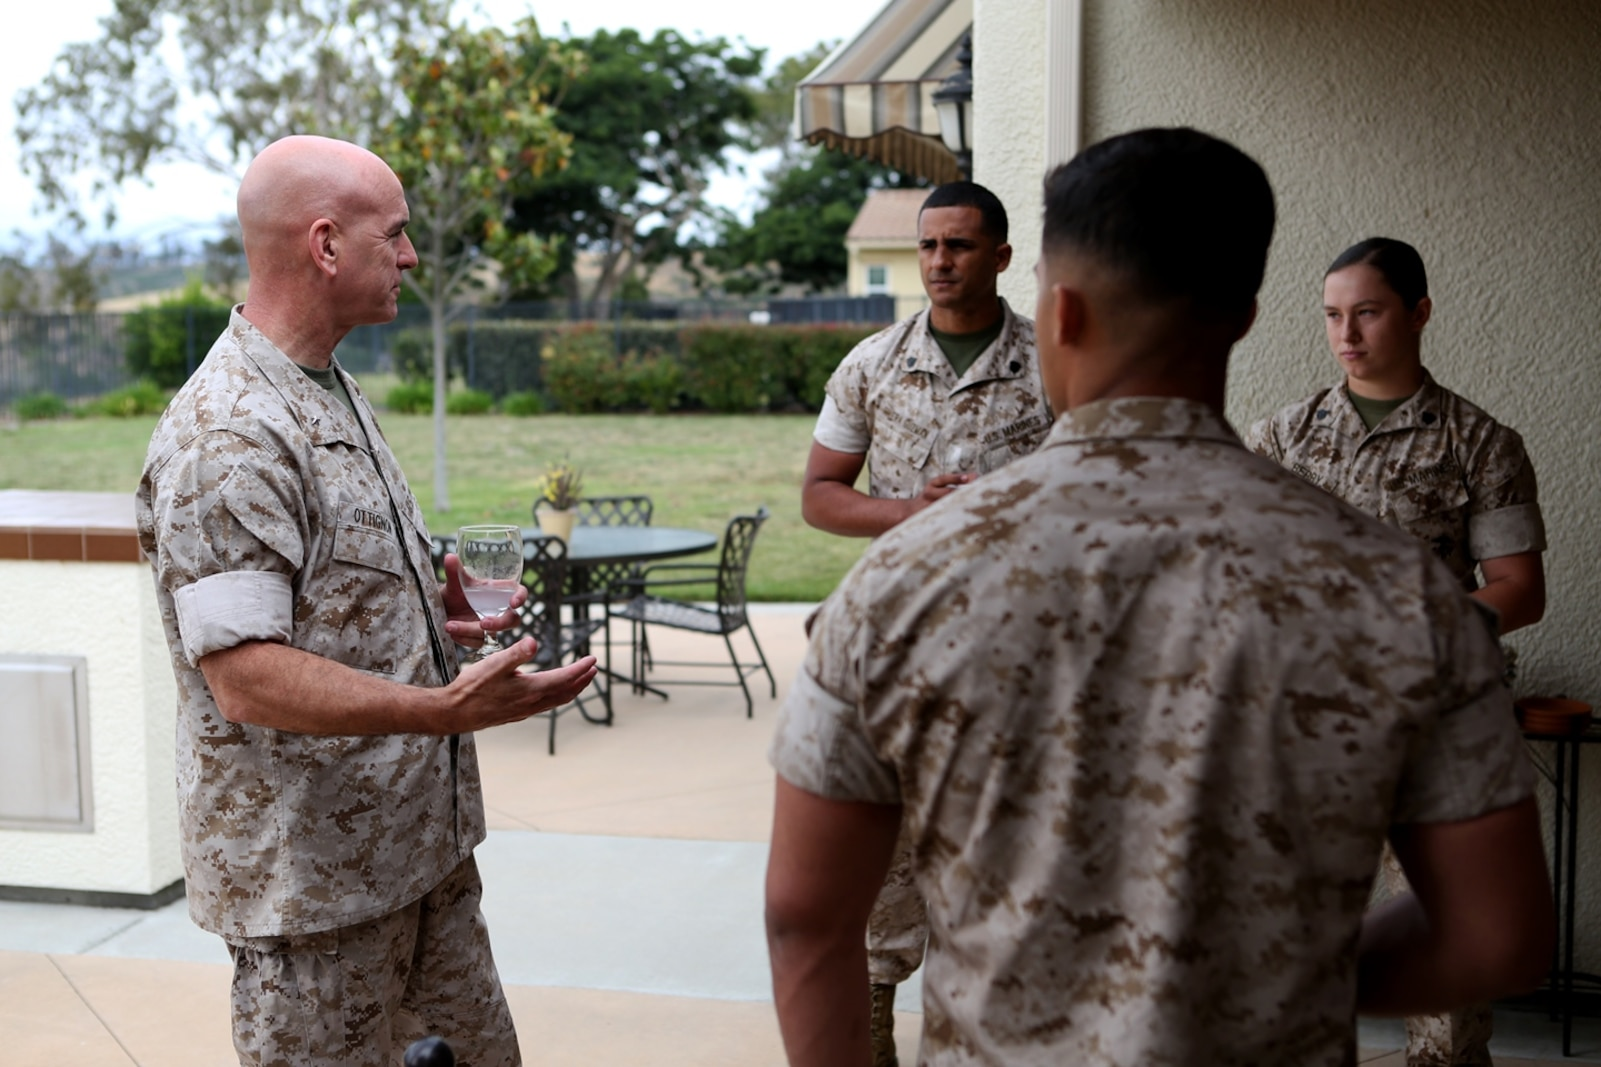 U.S. Marine Brig. Gen. David A. Ottignon speaks with meritoriously promoted sergeants from 1st Marine Logistics Group about leadership and the new role they will have as sergeants of Marines during a lunch he hosted for them aboard Camp Pendleton, Calif., May 17, 2016. Ottignon is the commanding general of 1st MLG. During the gathering the Marines had an opportunity to speak with their most senior leaders, to include the MLG commanding general, sergeant major, and command master chief. The four Marines promoted were Sgt. Olivia Berry, a combat engineer with Combat Logistics Battalion 5, Sgt. Lucas Ferreira, a combat engineer with 7th Engineer Support Battalion, Sgt. Jose Gaytan, an engineer equipment mechanic from Combat Logistics Battalion 11, and Sgt. Hector RiveraGuzman, a warehouse clerk with 1st Supply Battalion. (U.S. Marine Corps photo by Sgt. Carson Gramley/released)